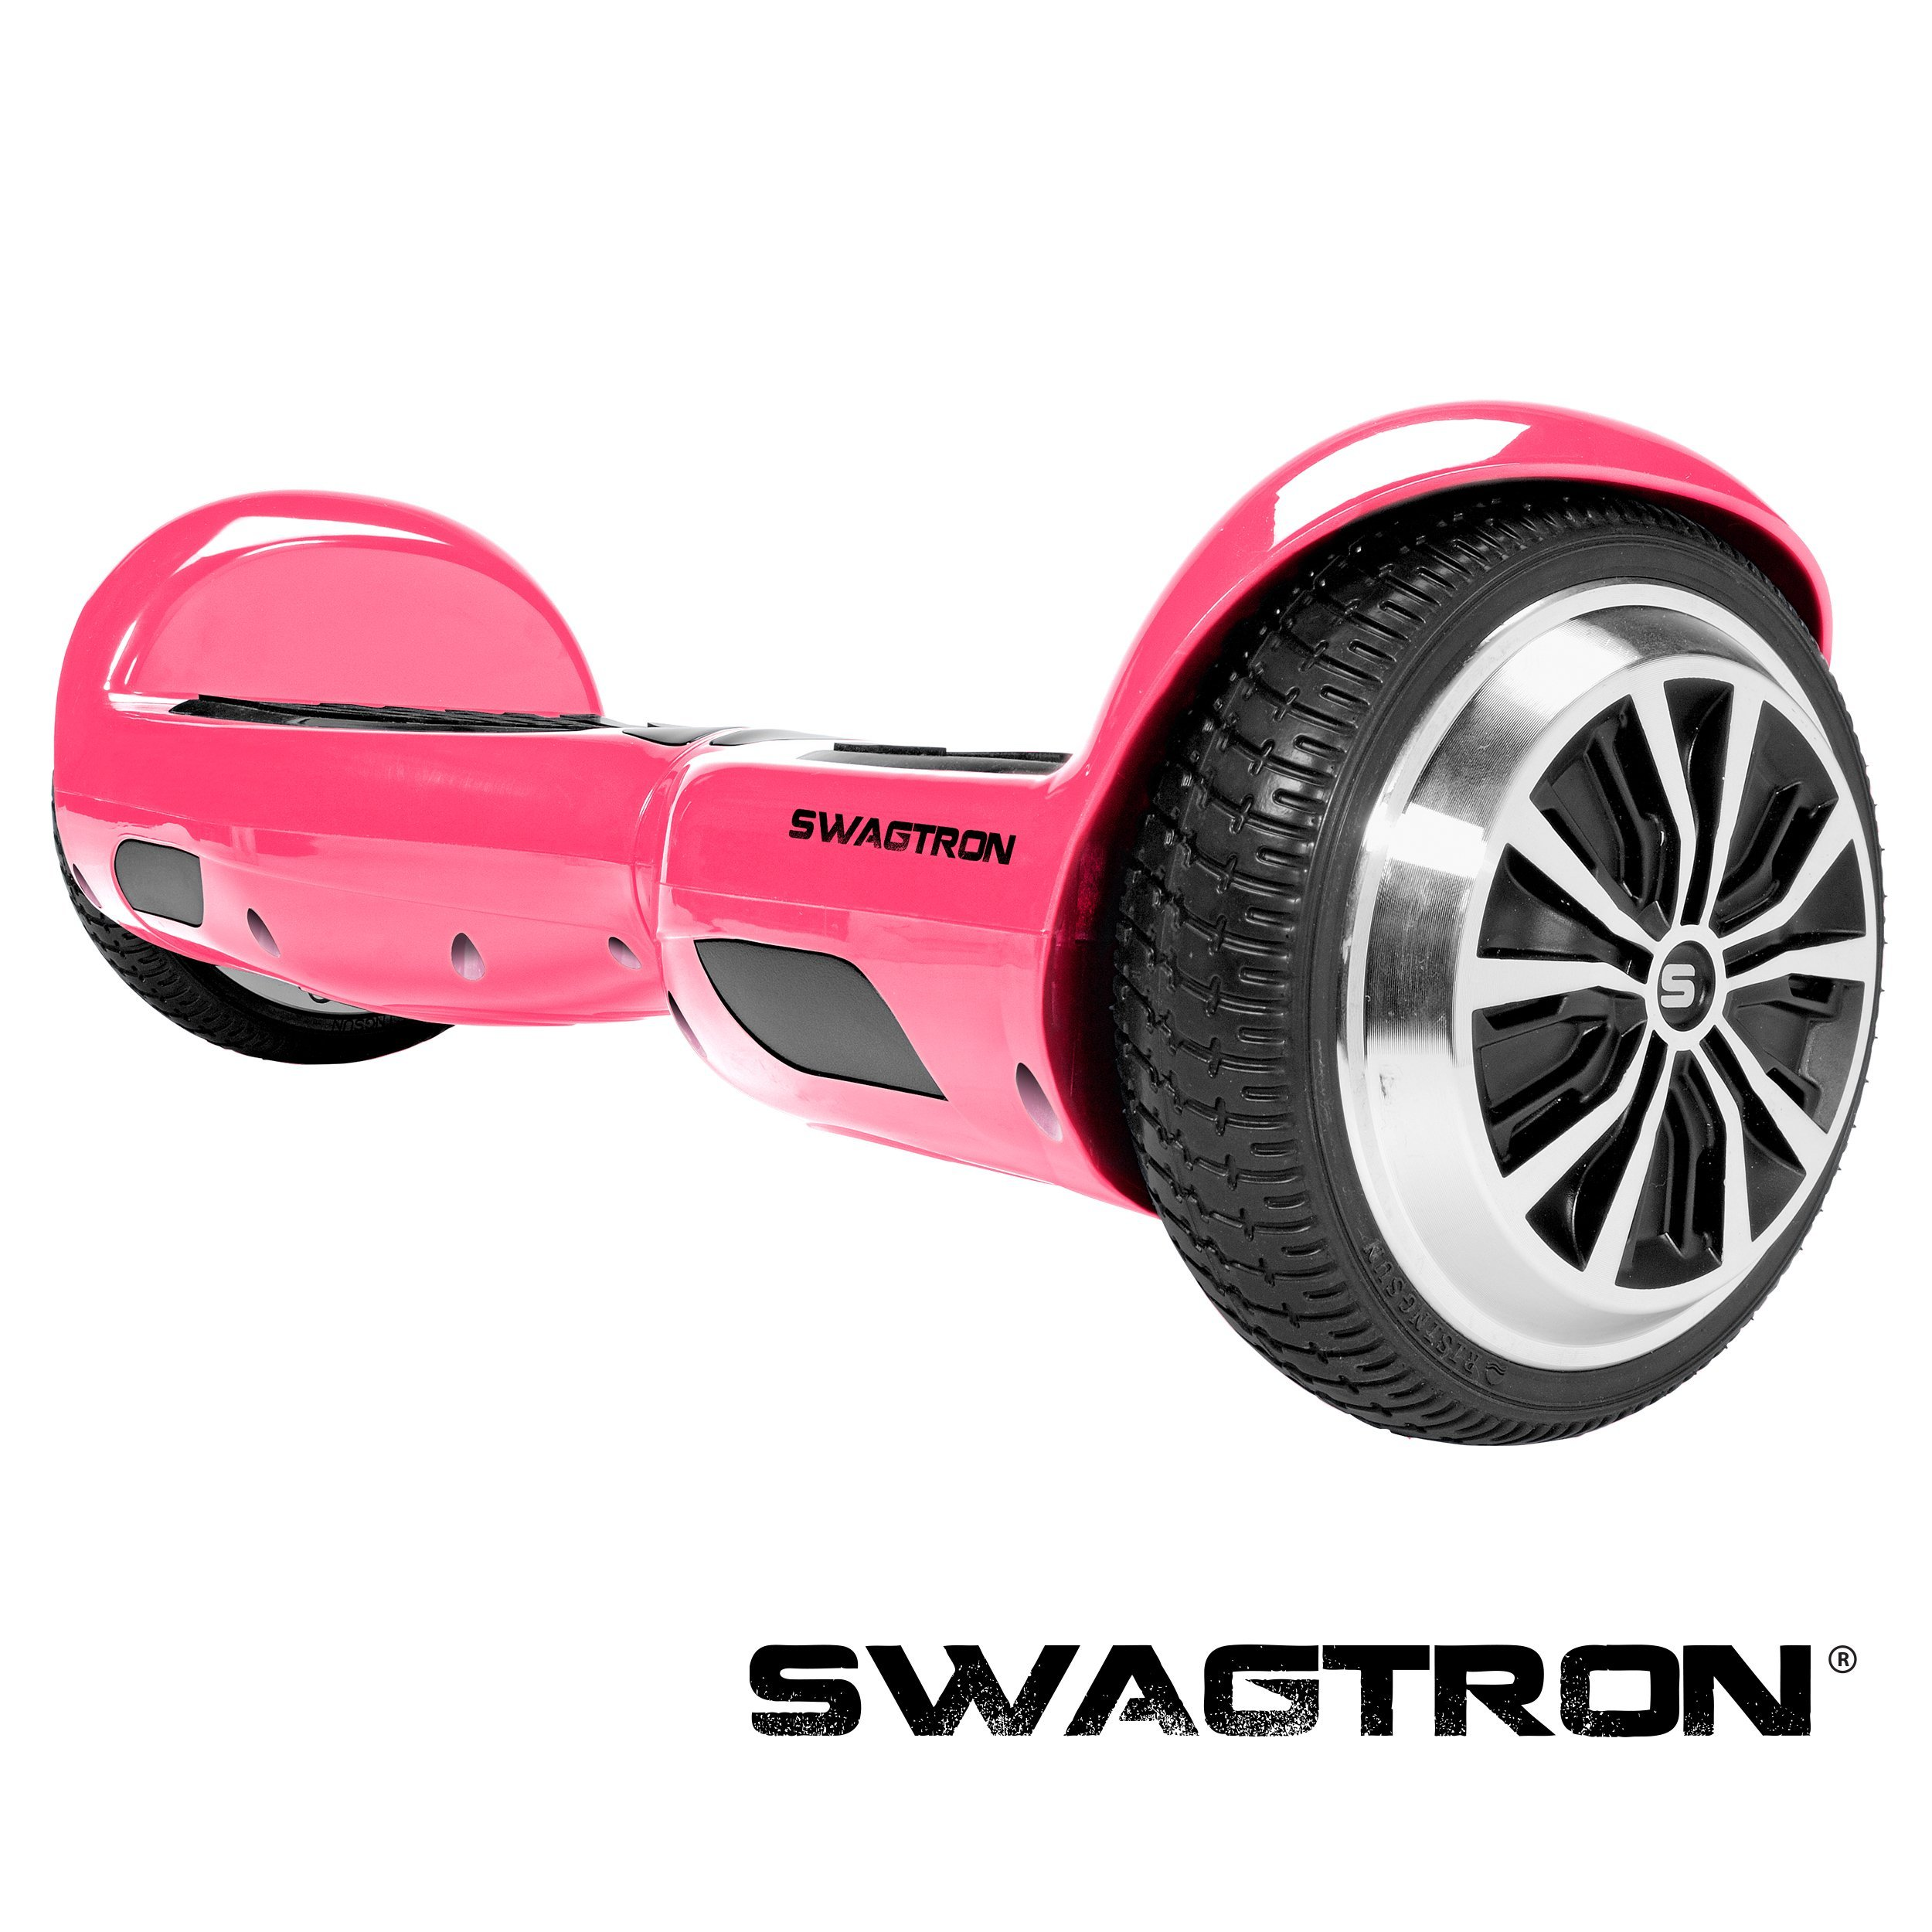 SWAGTRON T1 - UL 2272 Certified Hoverboard - Electric Self-Balancing Scooter – Your swag personal transporter awaits you. (Pink) by Swagtron